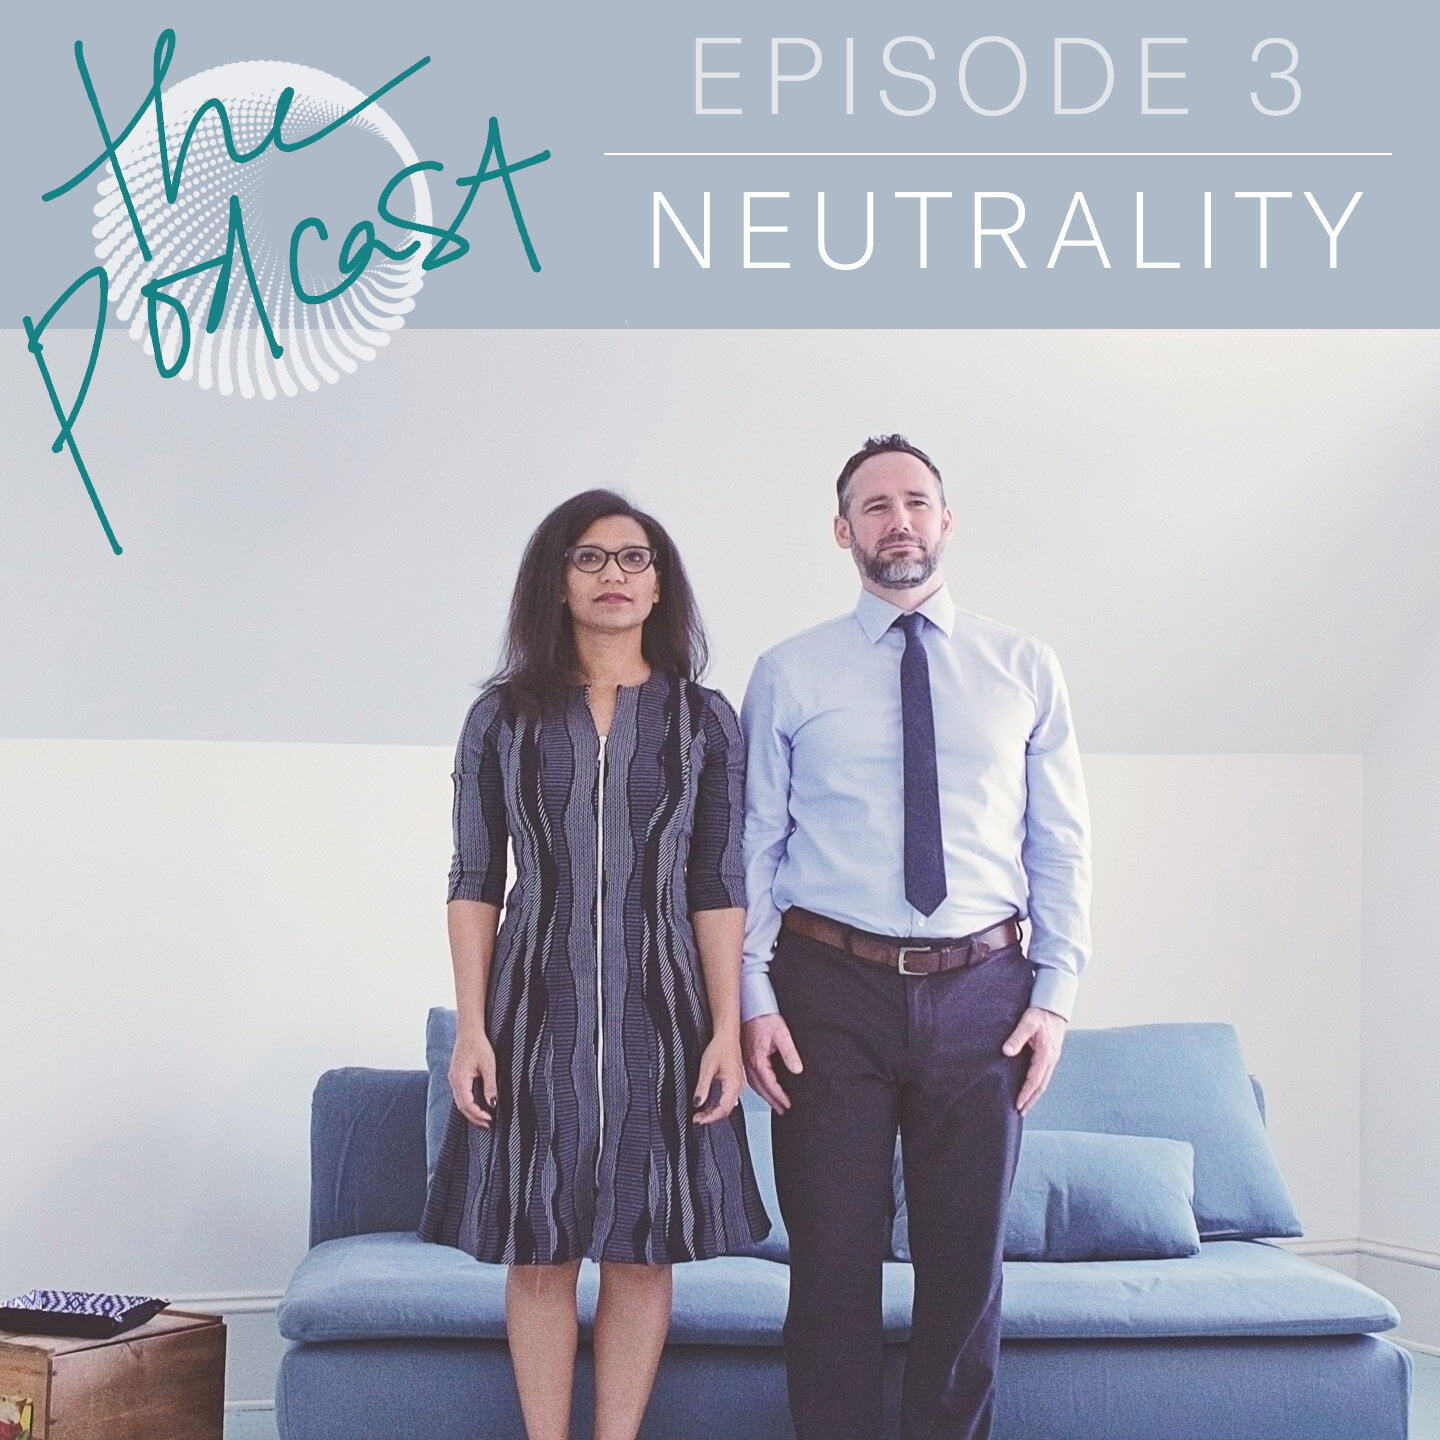 Tim and Tuesday contemplate the nature of neutrality. Is it possible — or desirable — to be neutral as a host or facilitator? What are our obligations towards the people in the room?